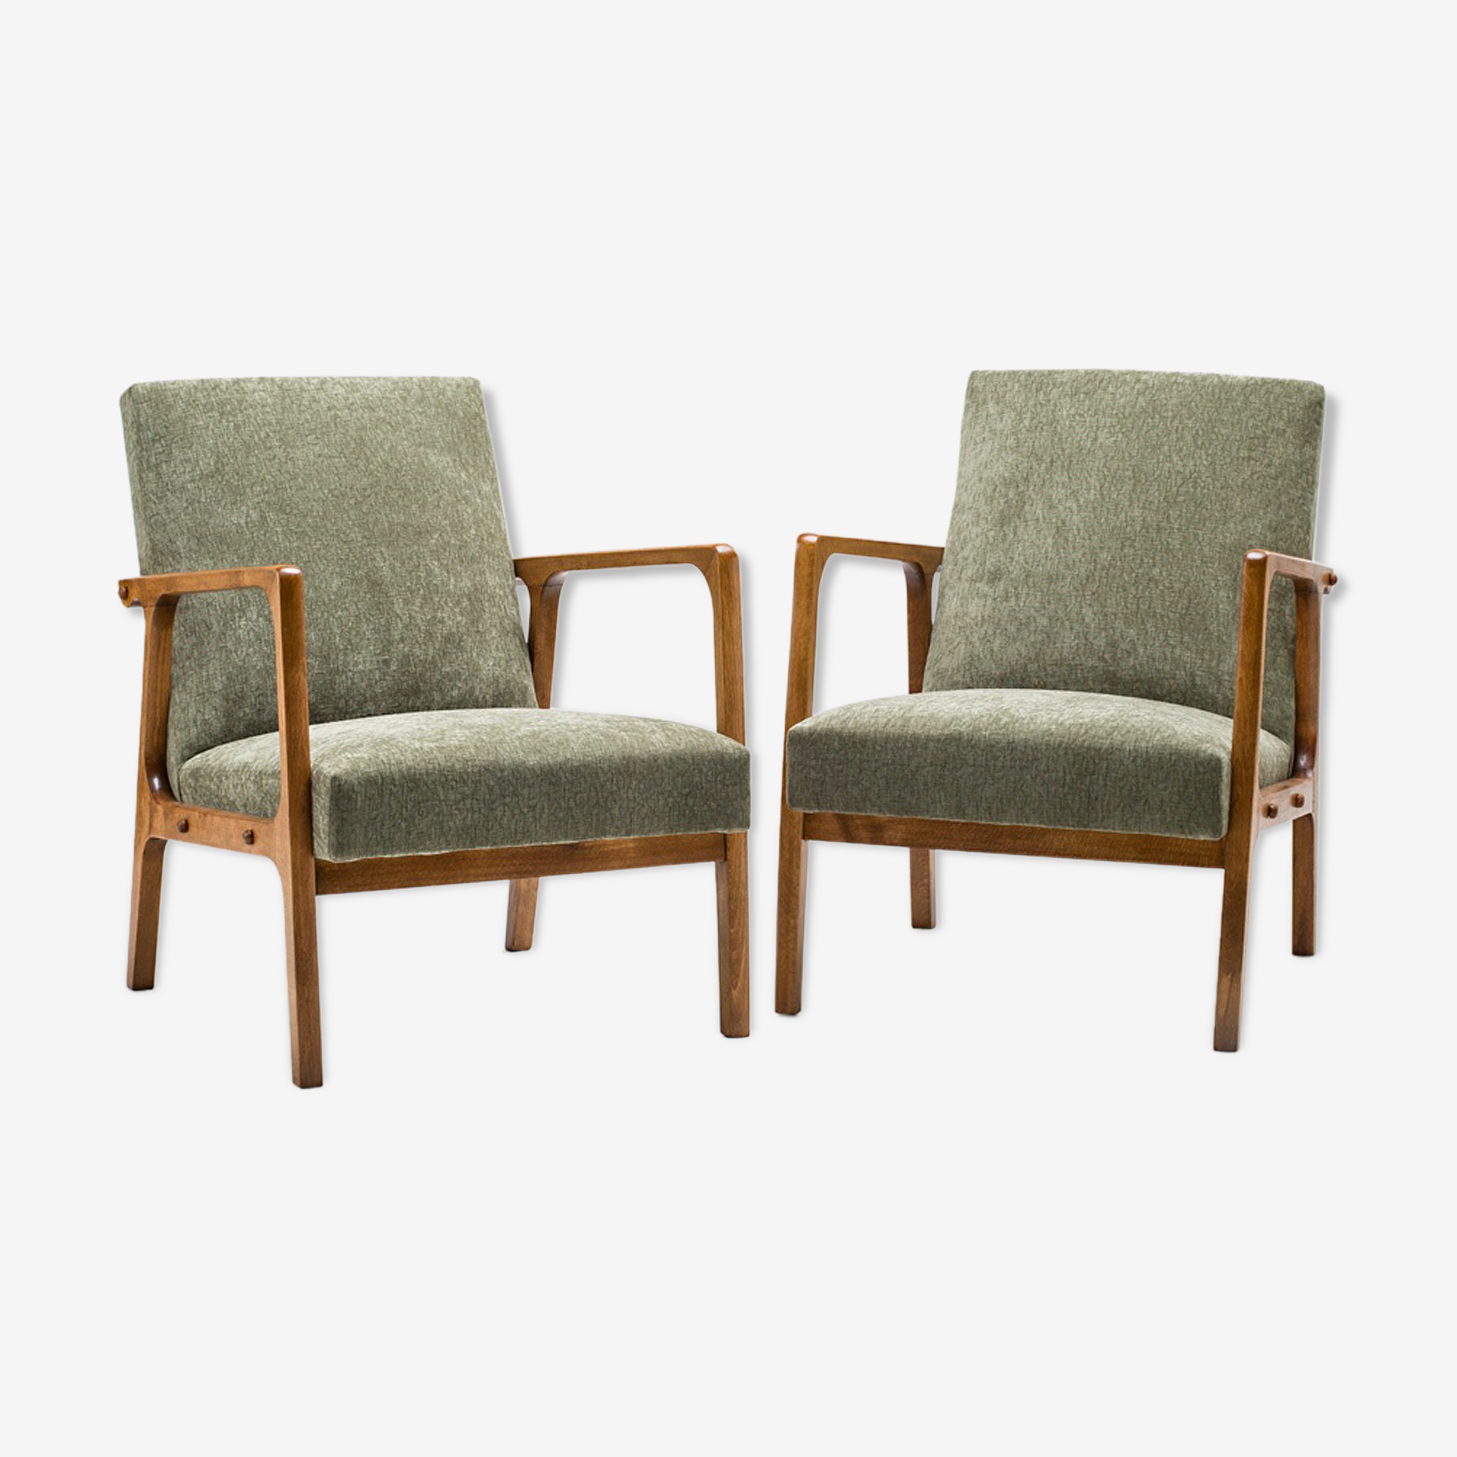 Set of 2 armchairs type 68 from 60s